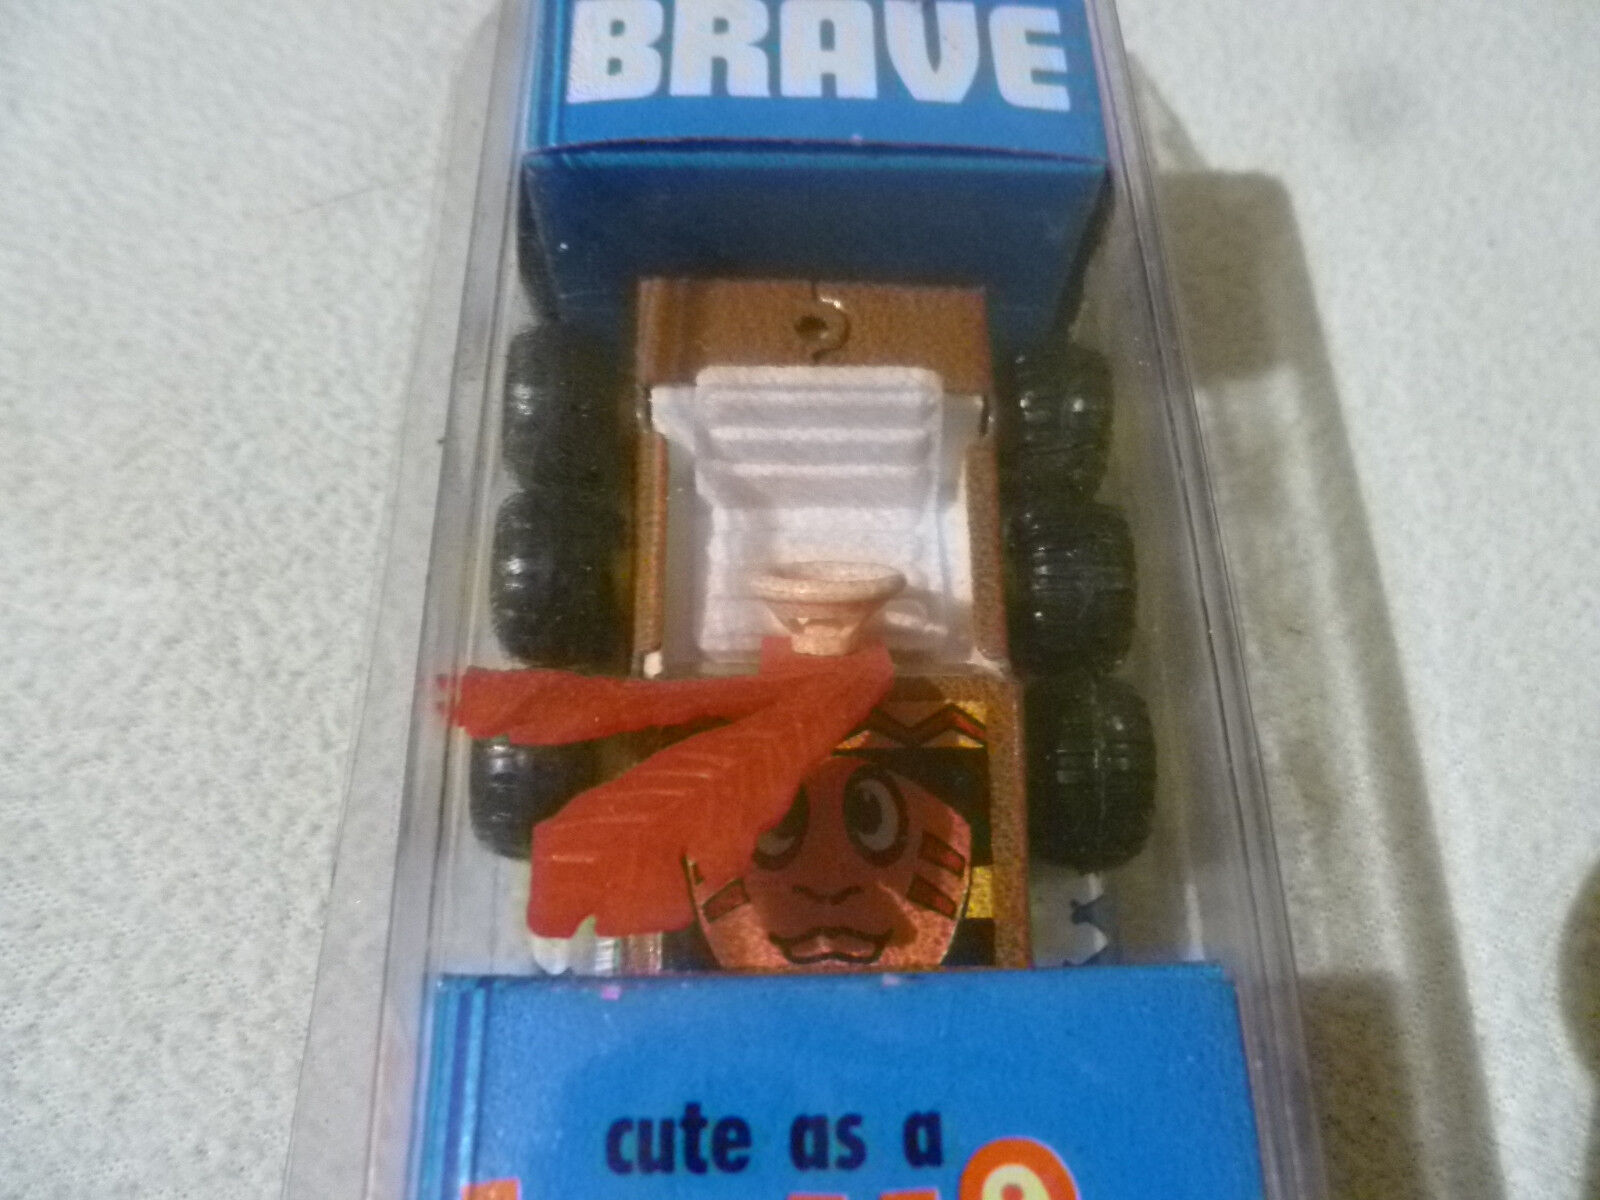 NEW BUDDY L BRAVE BUTTONS STURDY STEEL STEEL STEEL DIECAST TOY CAR VINTAGE NO. 4101 RARE NIP 18433a